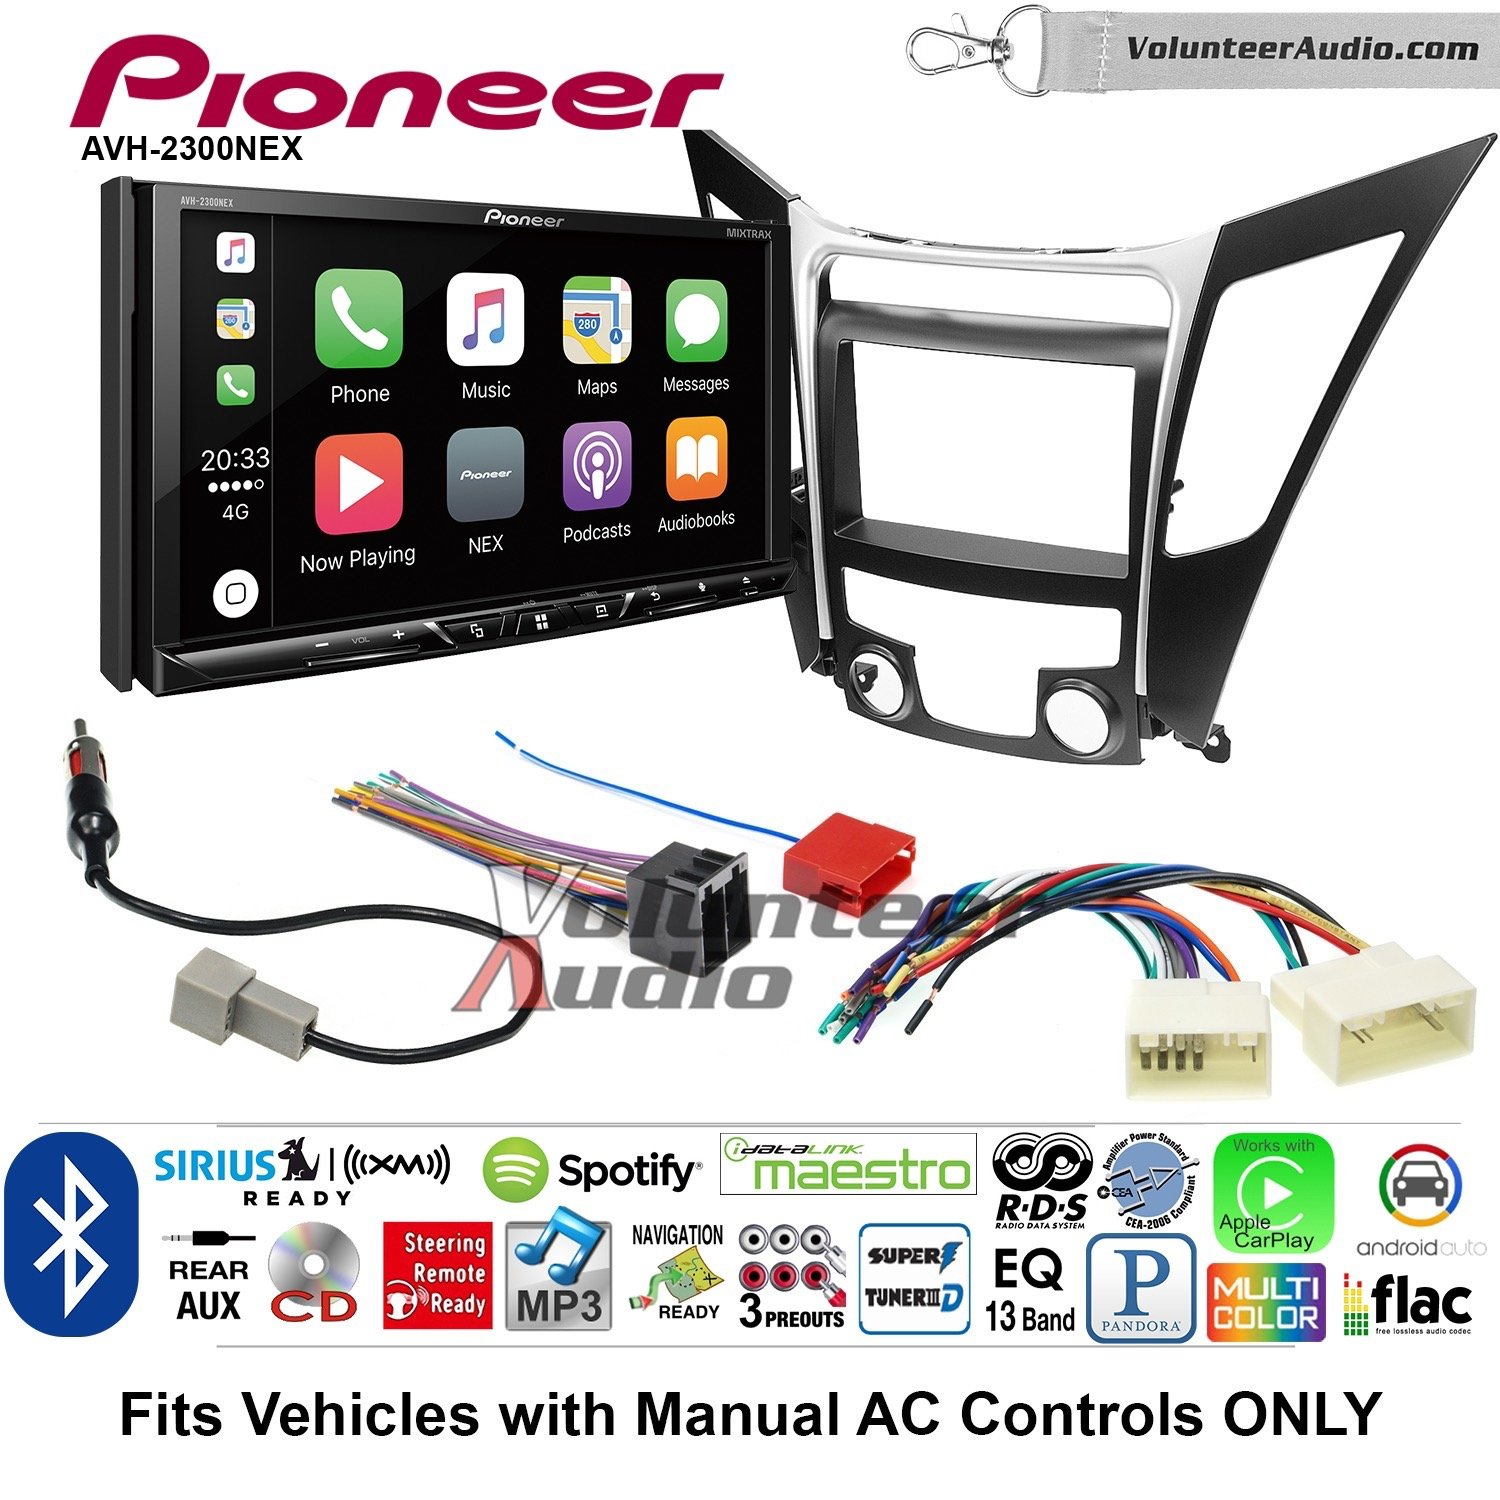 Volunteer Audio Pioneer AVH-2300NEX Double Din Radio Install Kit with Apple CarPlay Android Auto Bluetooth Fits 2011-2013 Hyundai Sonata